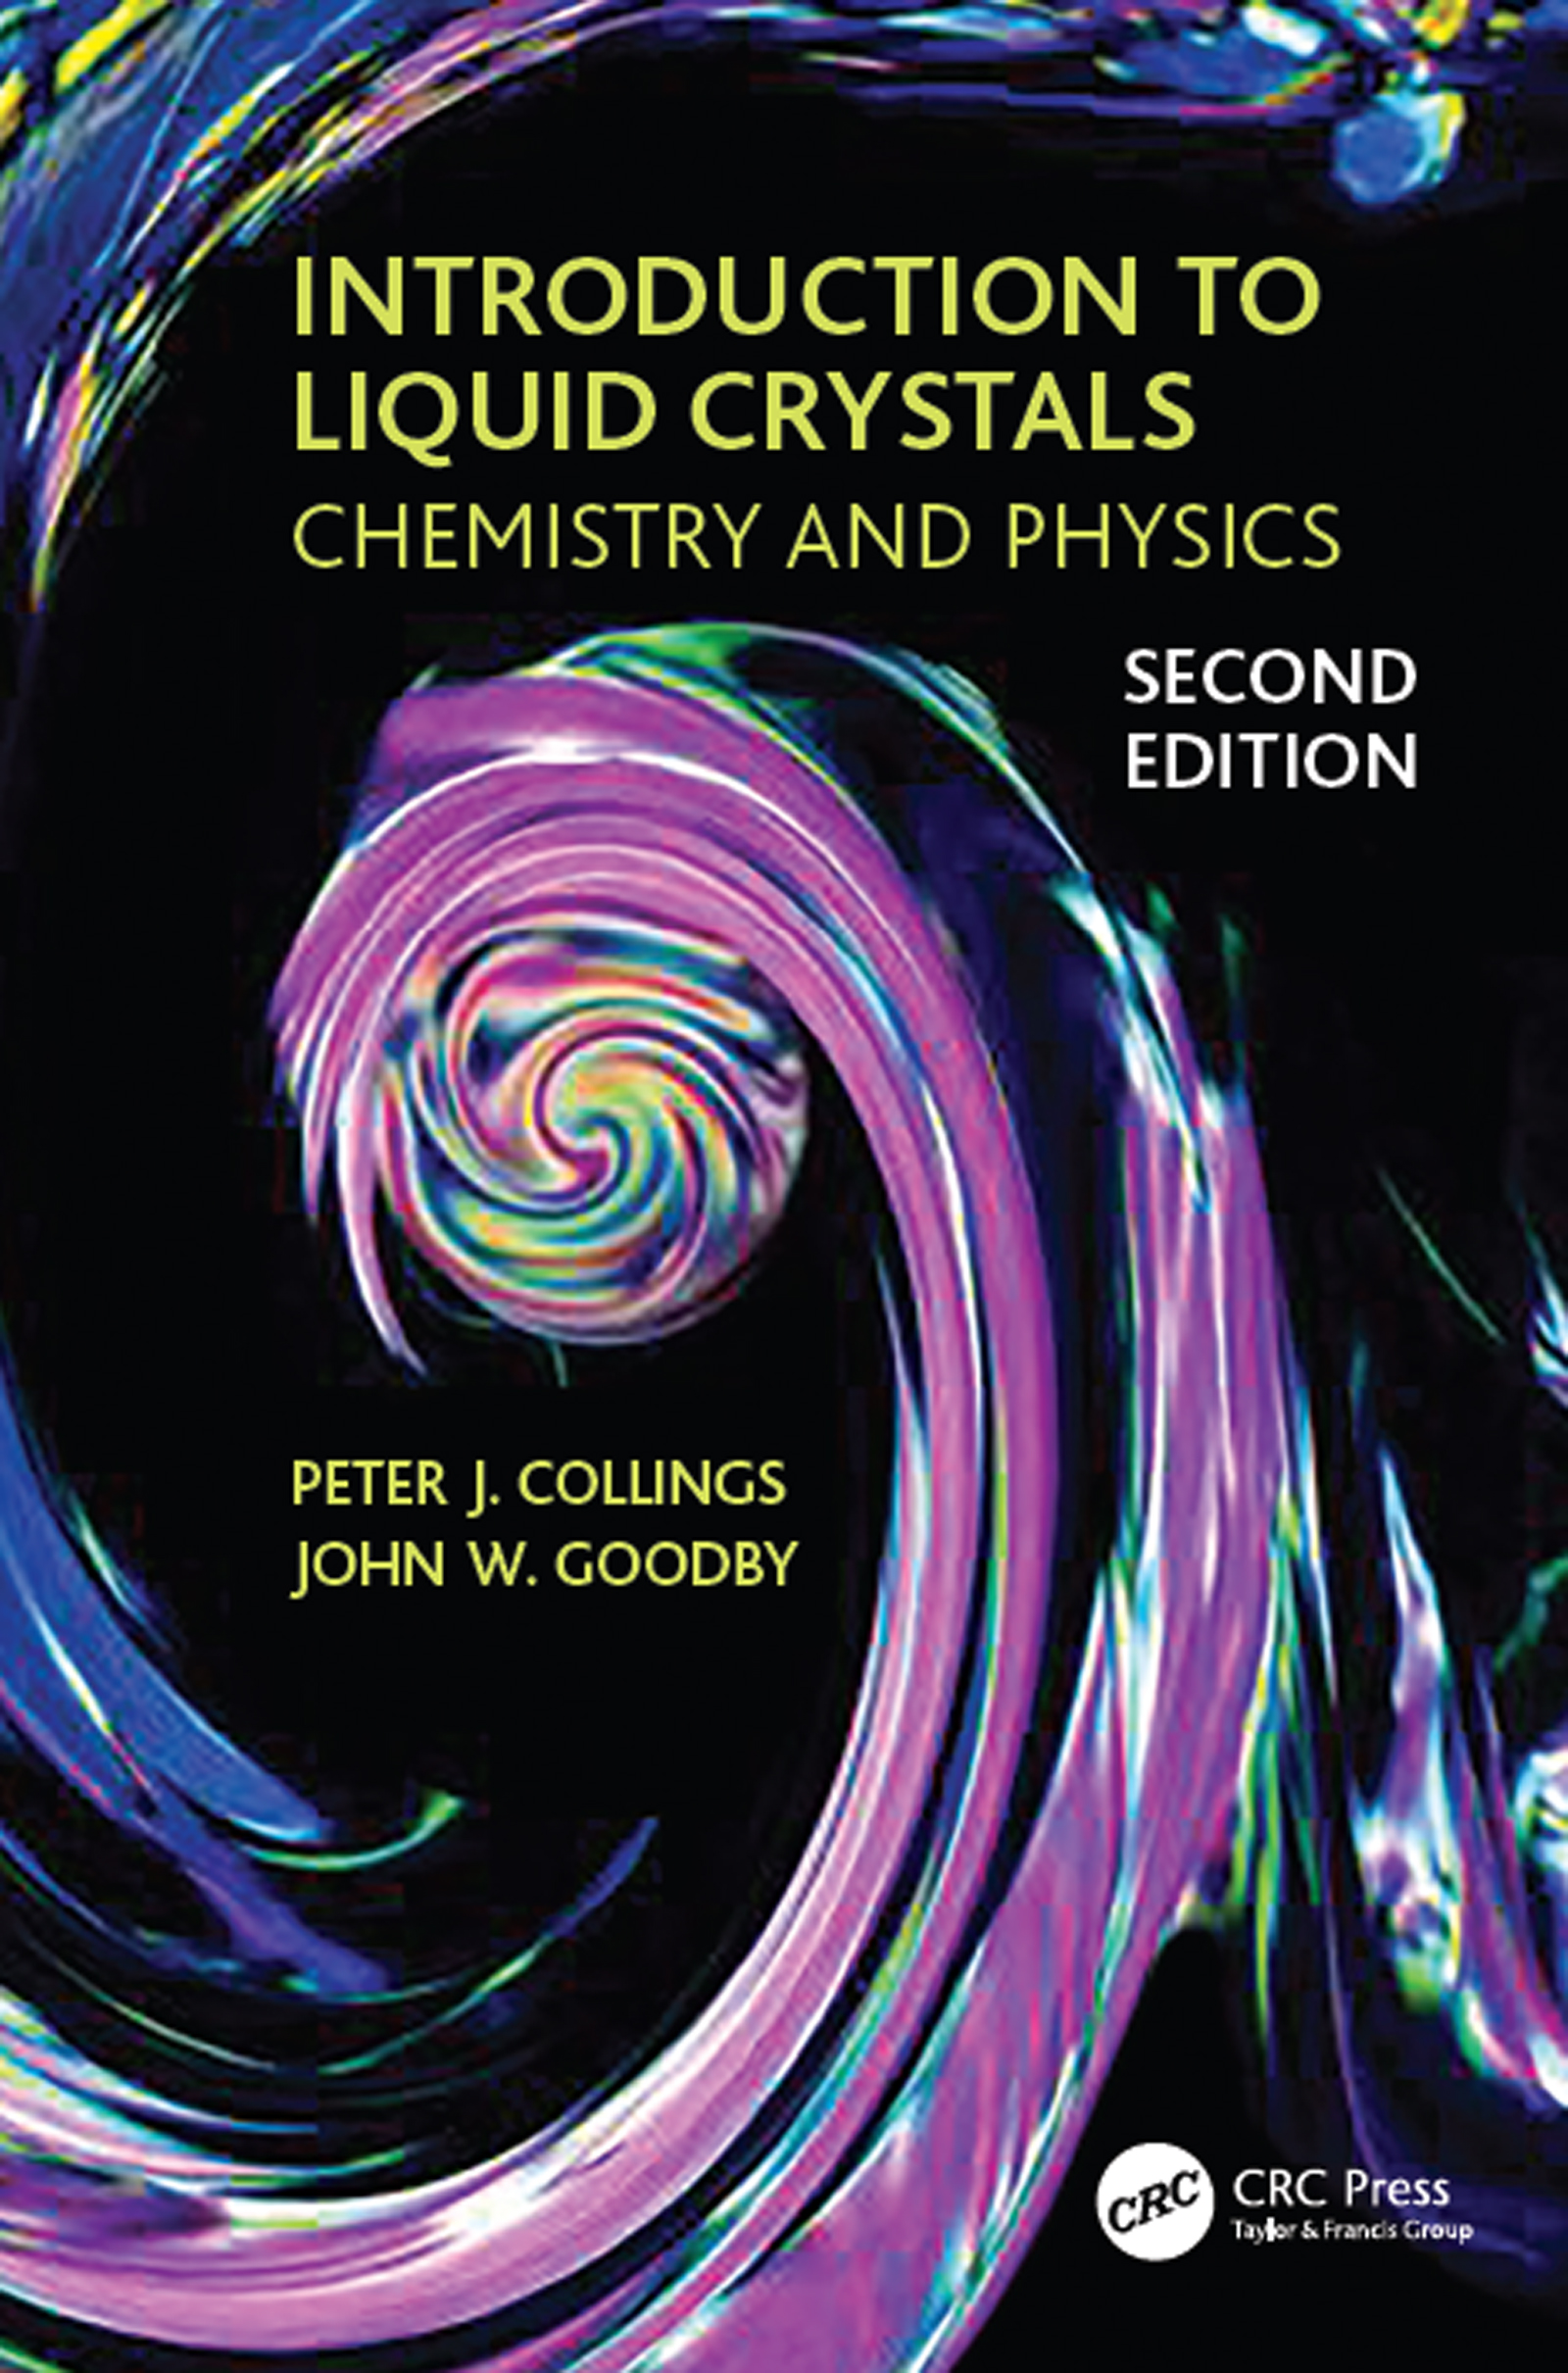 Introduction to Liquid Crystals: Chemistry and Physics, Second Edition book cover